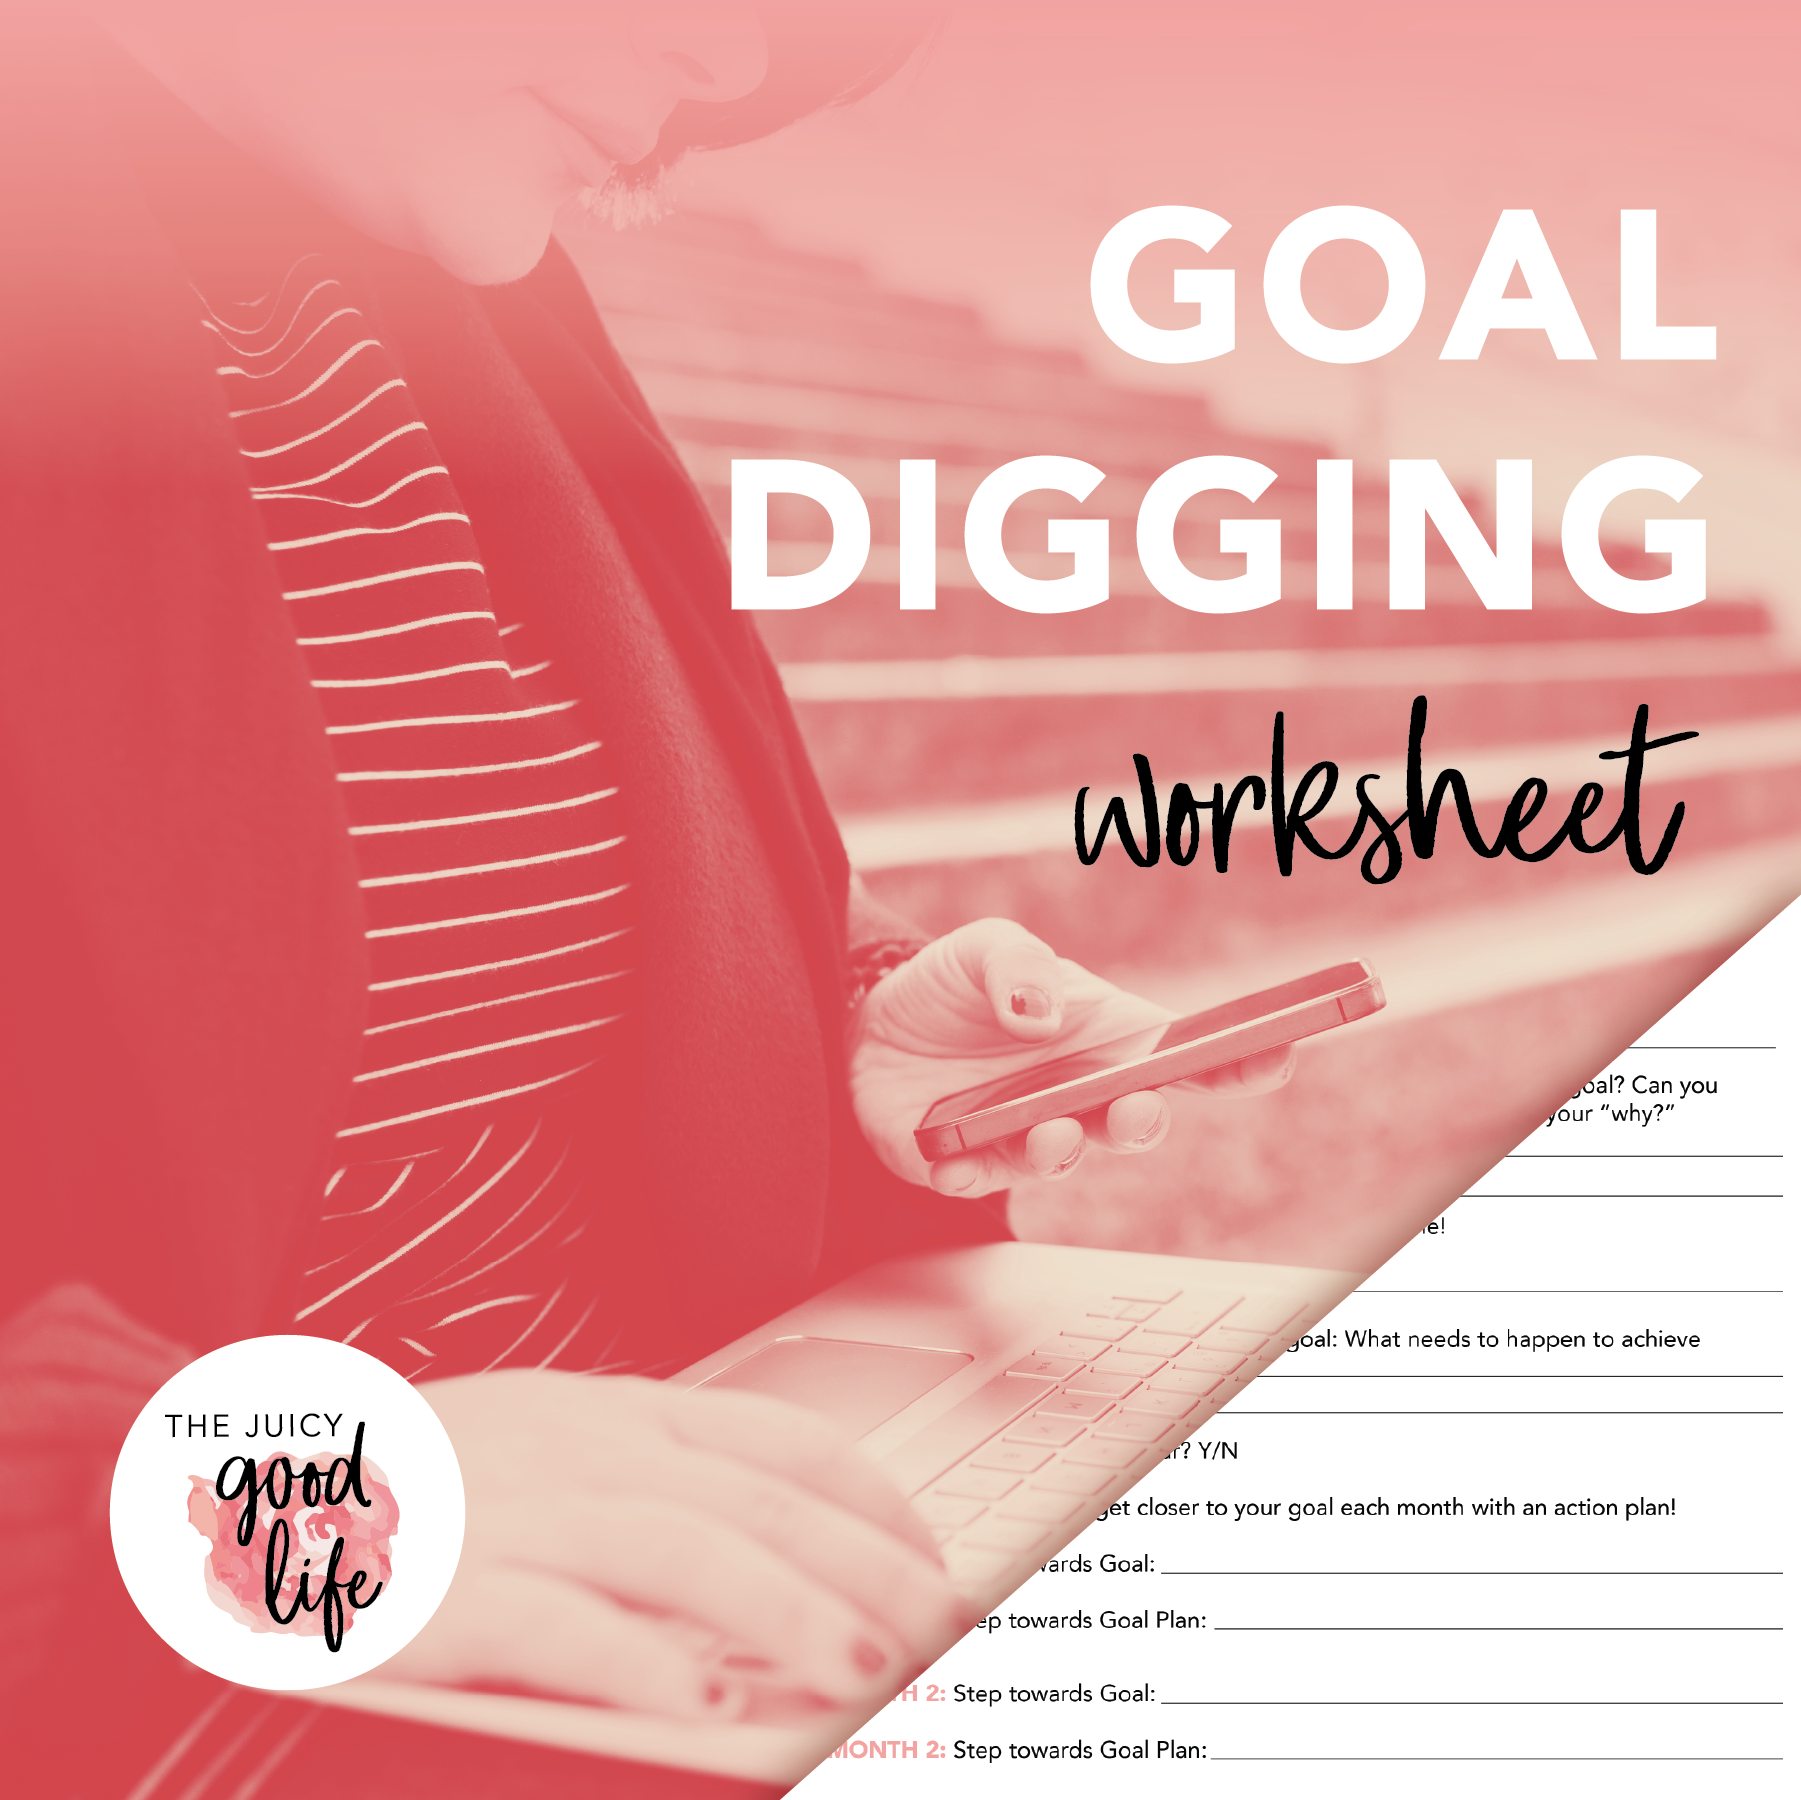 JGL_GoalDigging_Worksheet-02.png